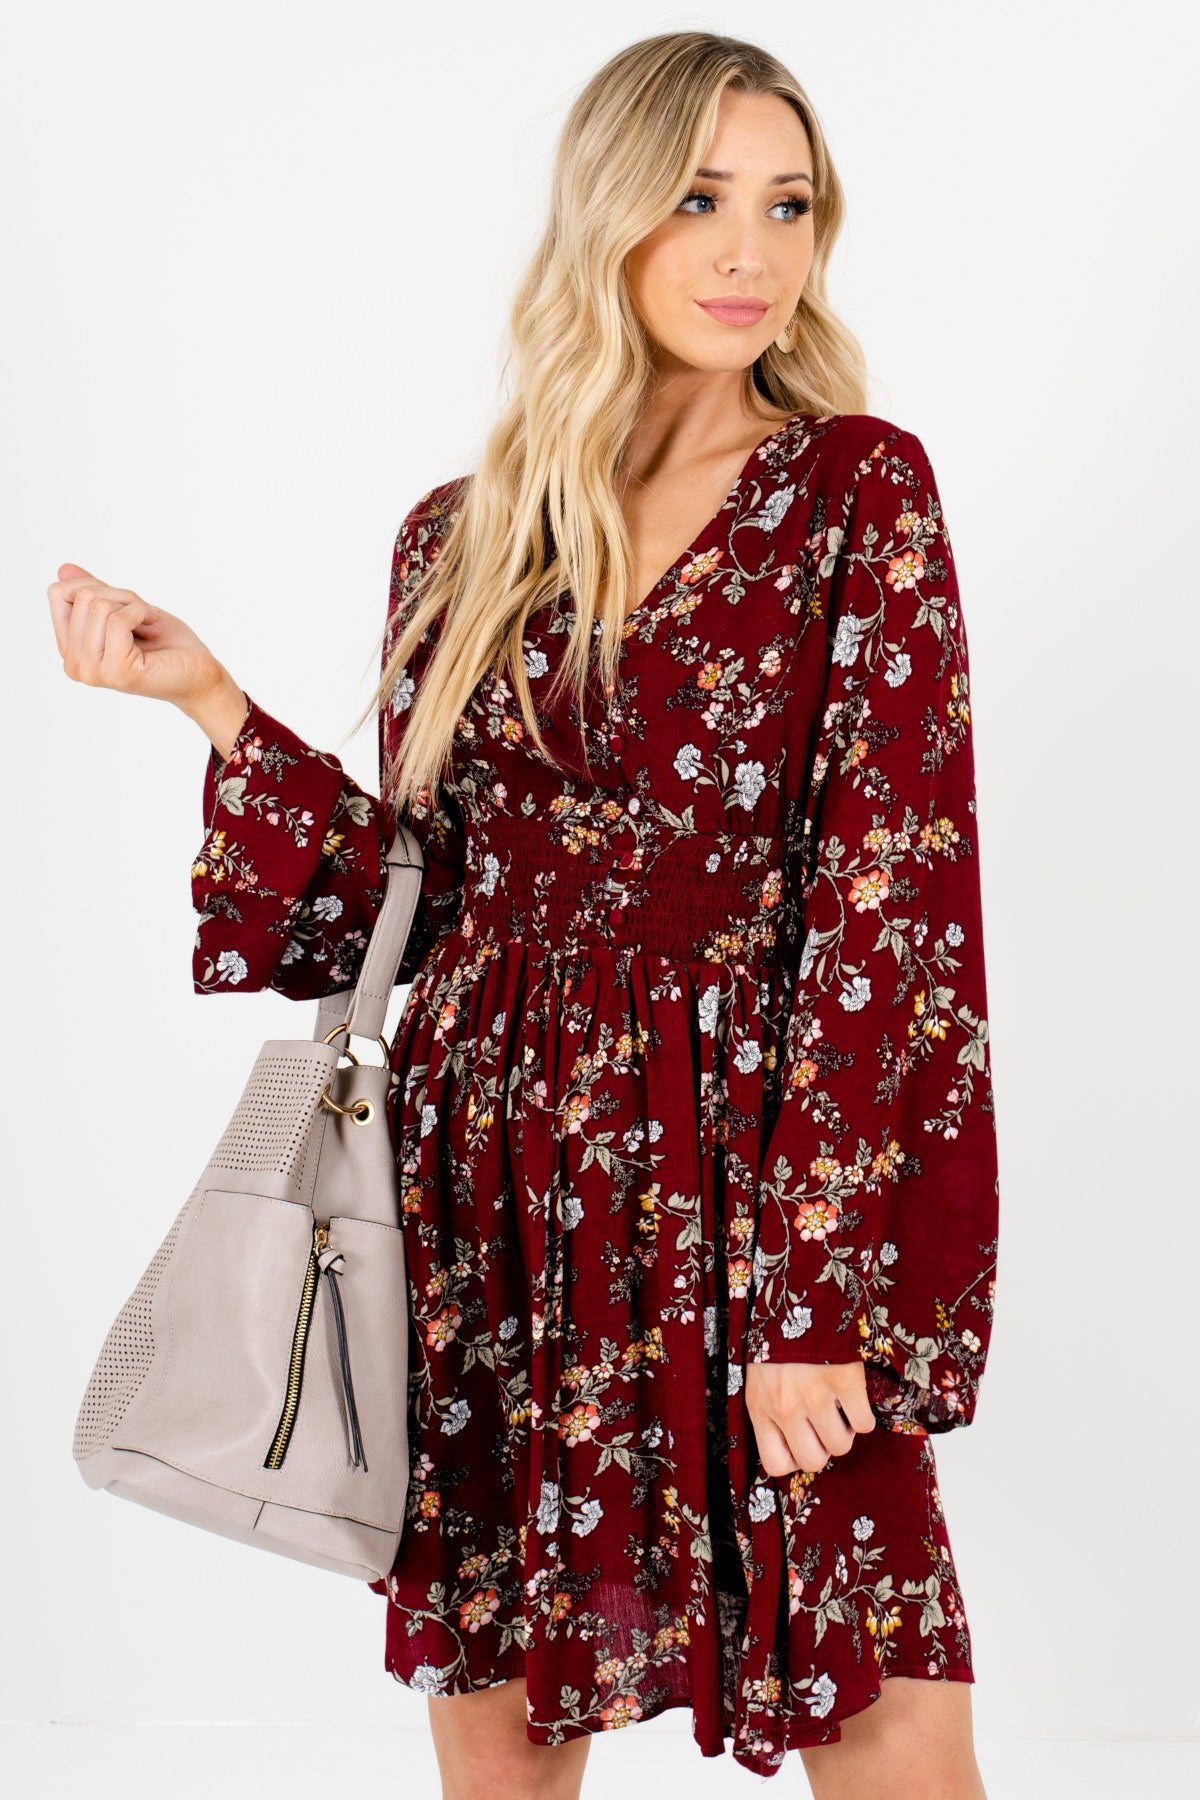 Burgundy Red Floral Print Long Sleeve Boutique Mini Dresses